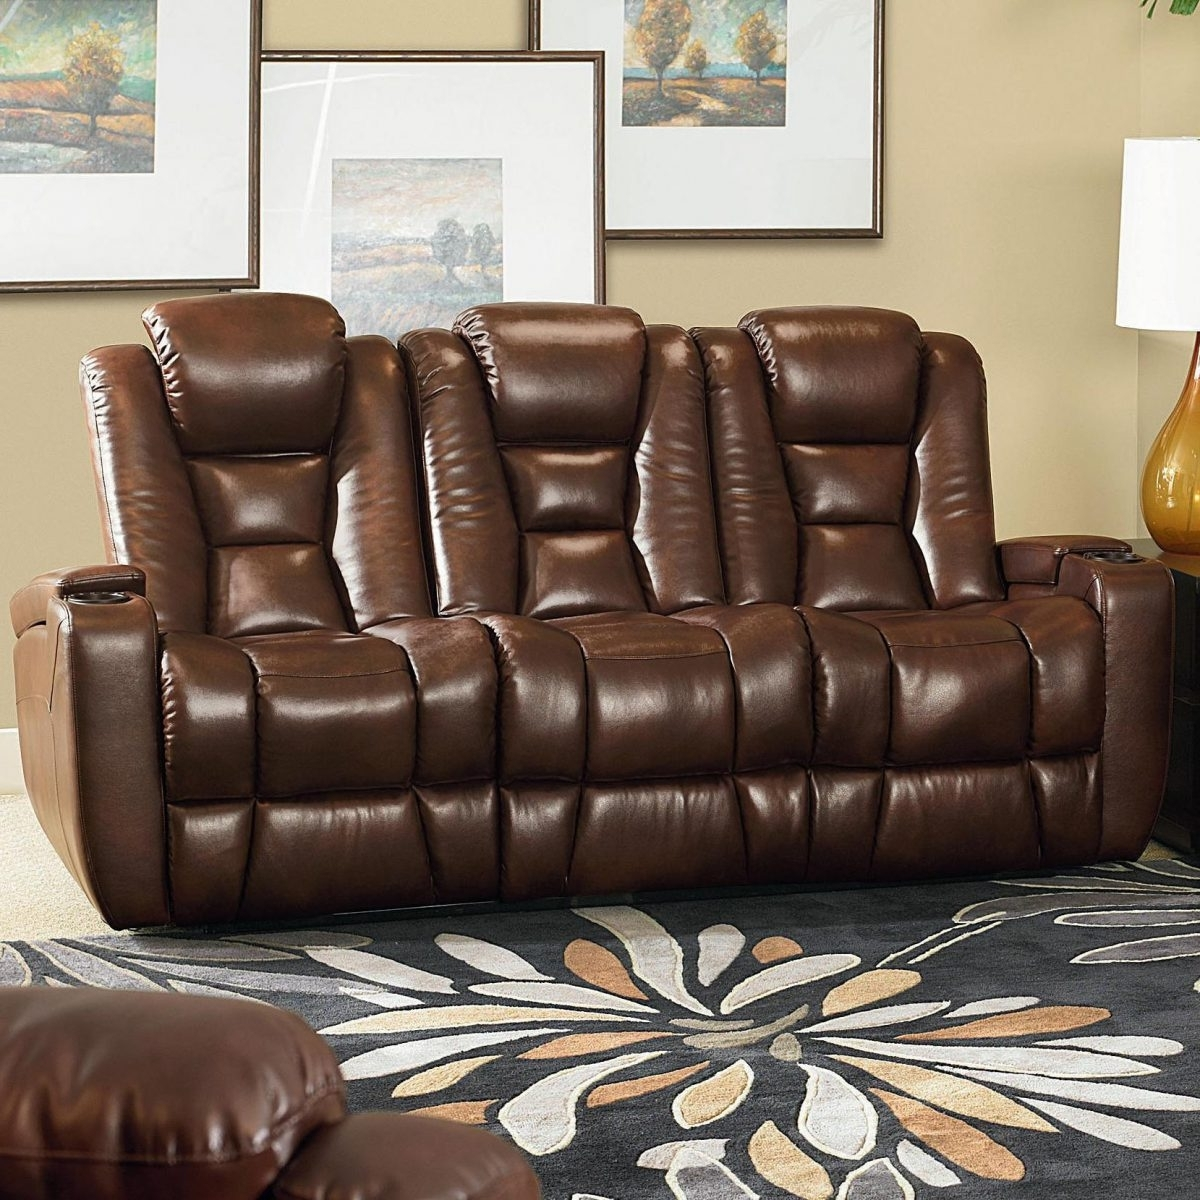 Best Ivan Smith Sofas #23523 Intended For Current Ivan Smith Sectional Sofas (View 14 of 20)